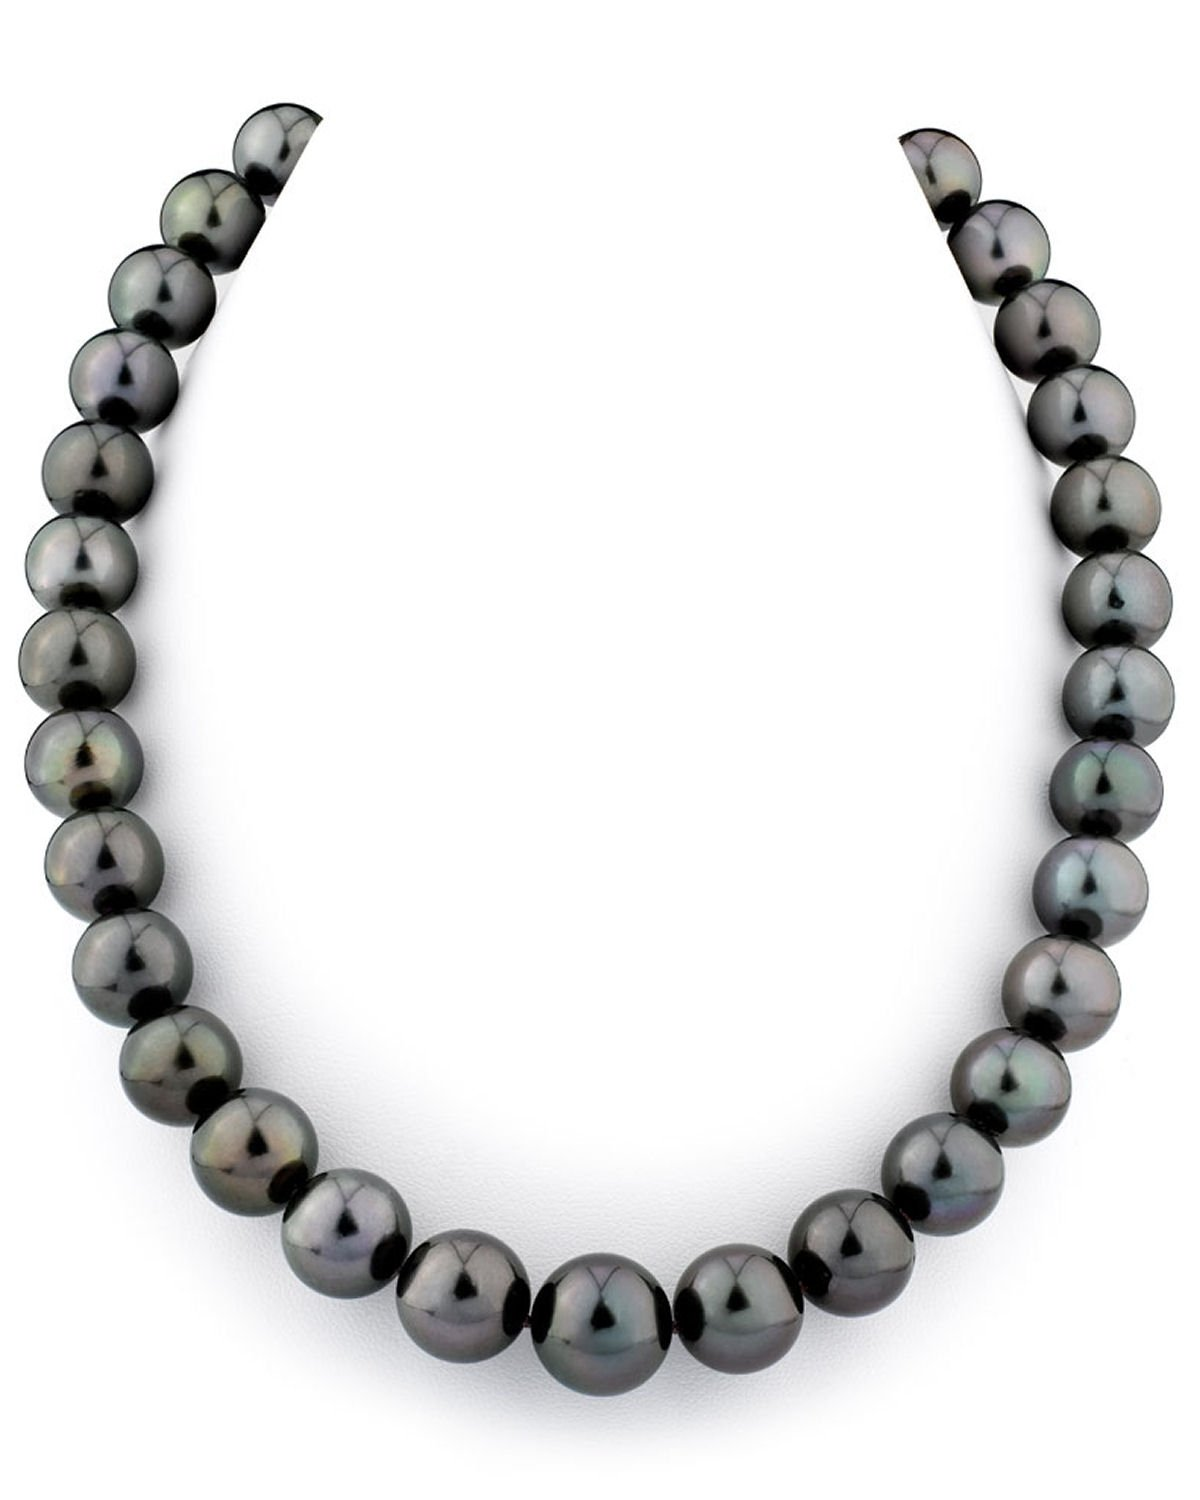 992943da73e49d 11-14mm Tahitian South Sea Pearl Necklace - AAAA Quality